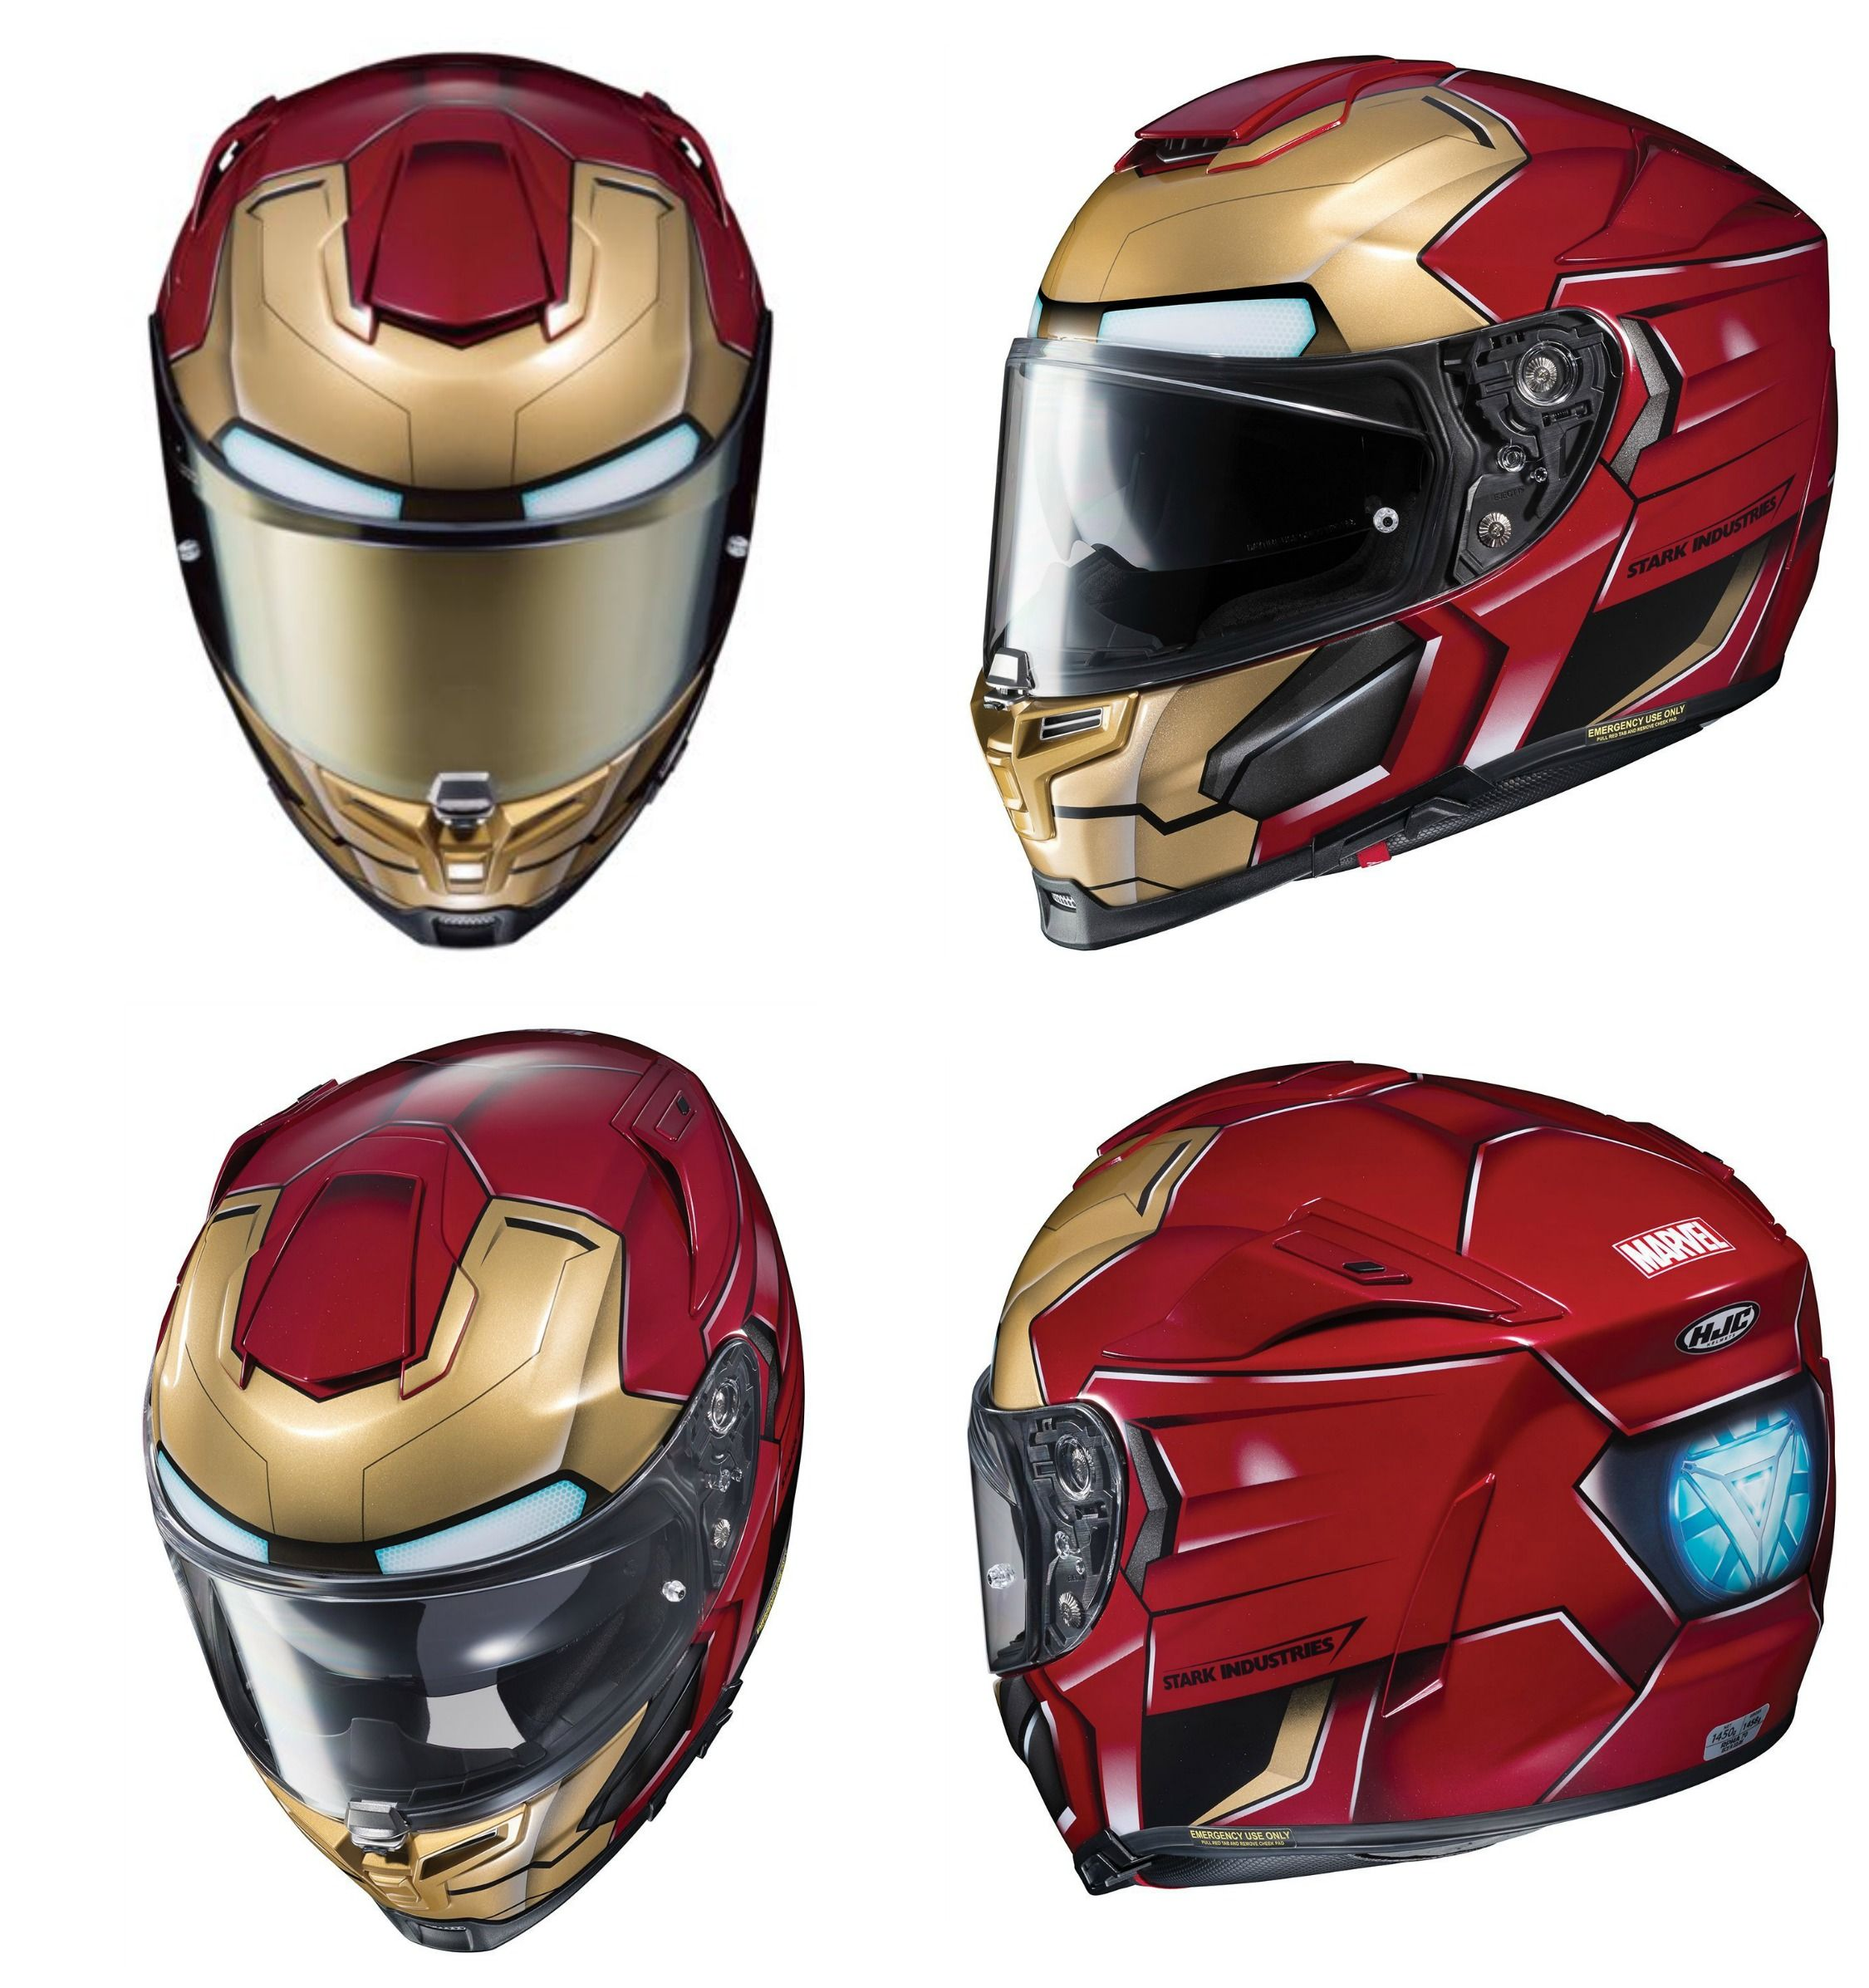 hjc rpha 70 st iron man motorcycle helmet review motorcycle helmets with style pinterest. Black Bedroom Furniture Sets. Home Design Ideas